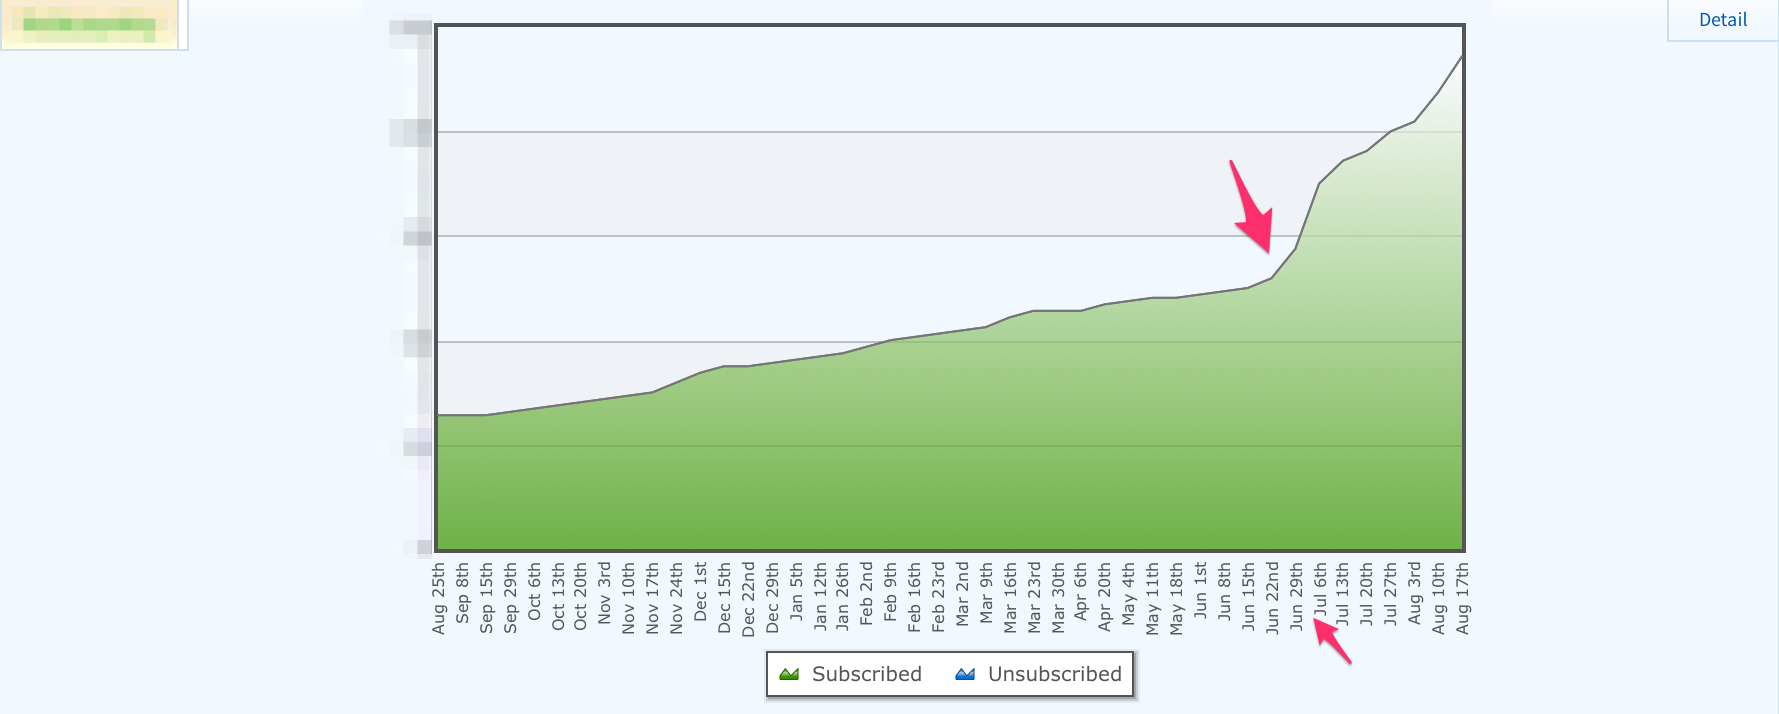 Weekly Subscriber Growth Longer Timeframe